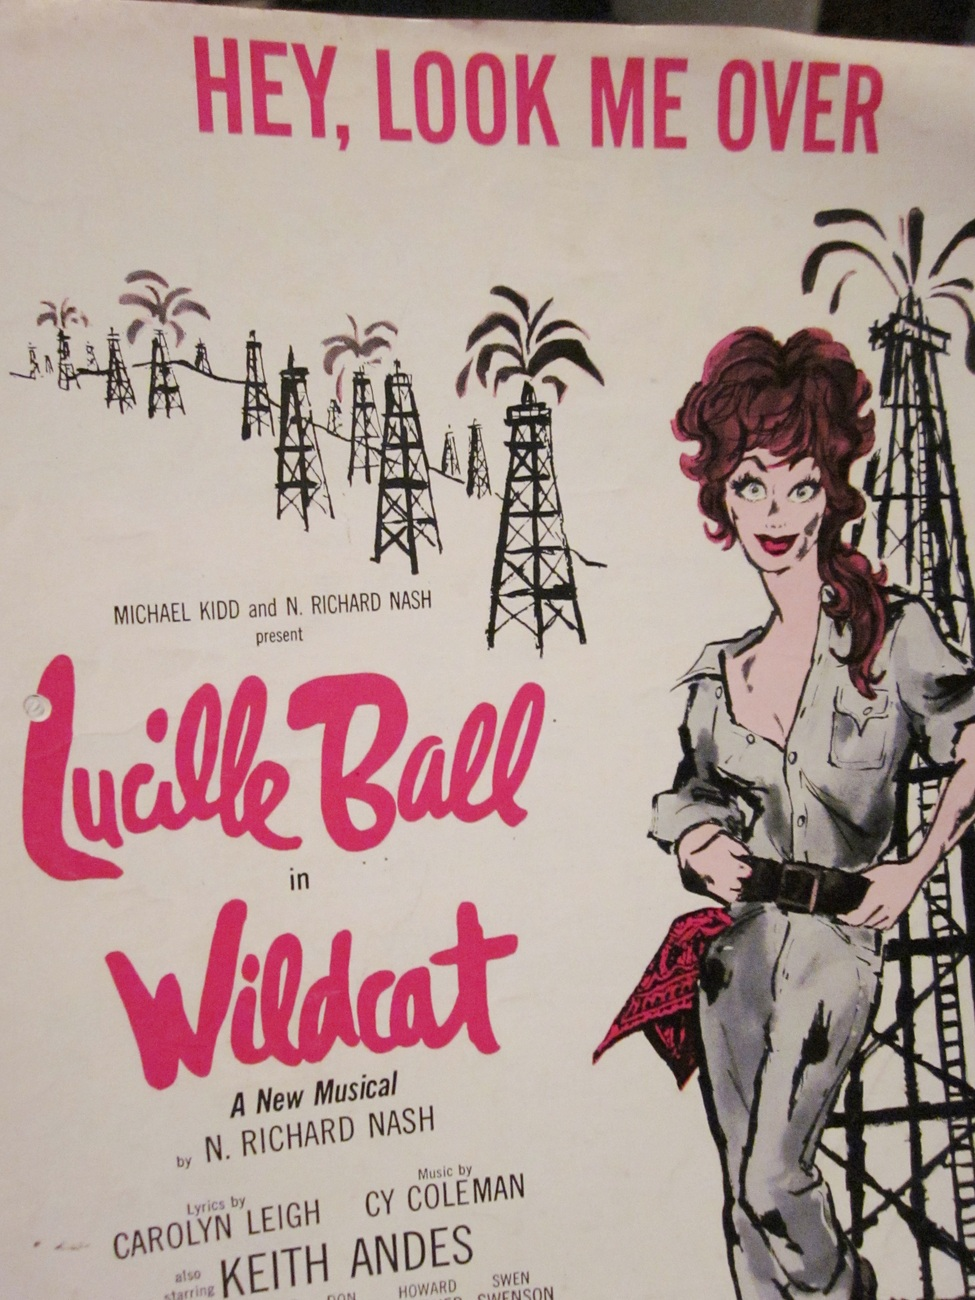 Sheet Music Hey, Look Me Over by Lucille Ball in Wildcat 1960